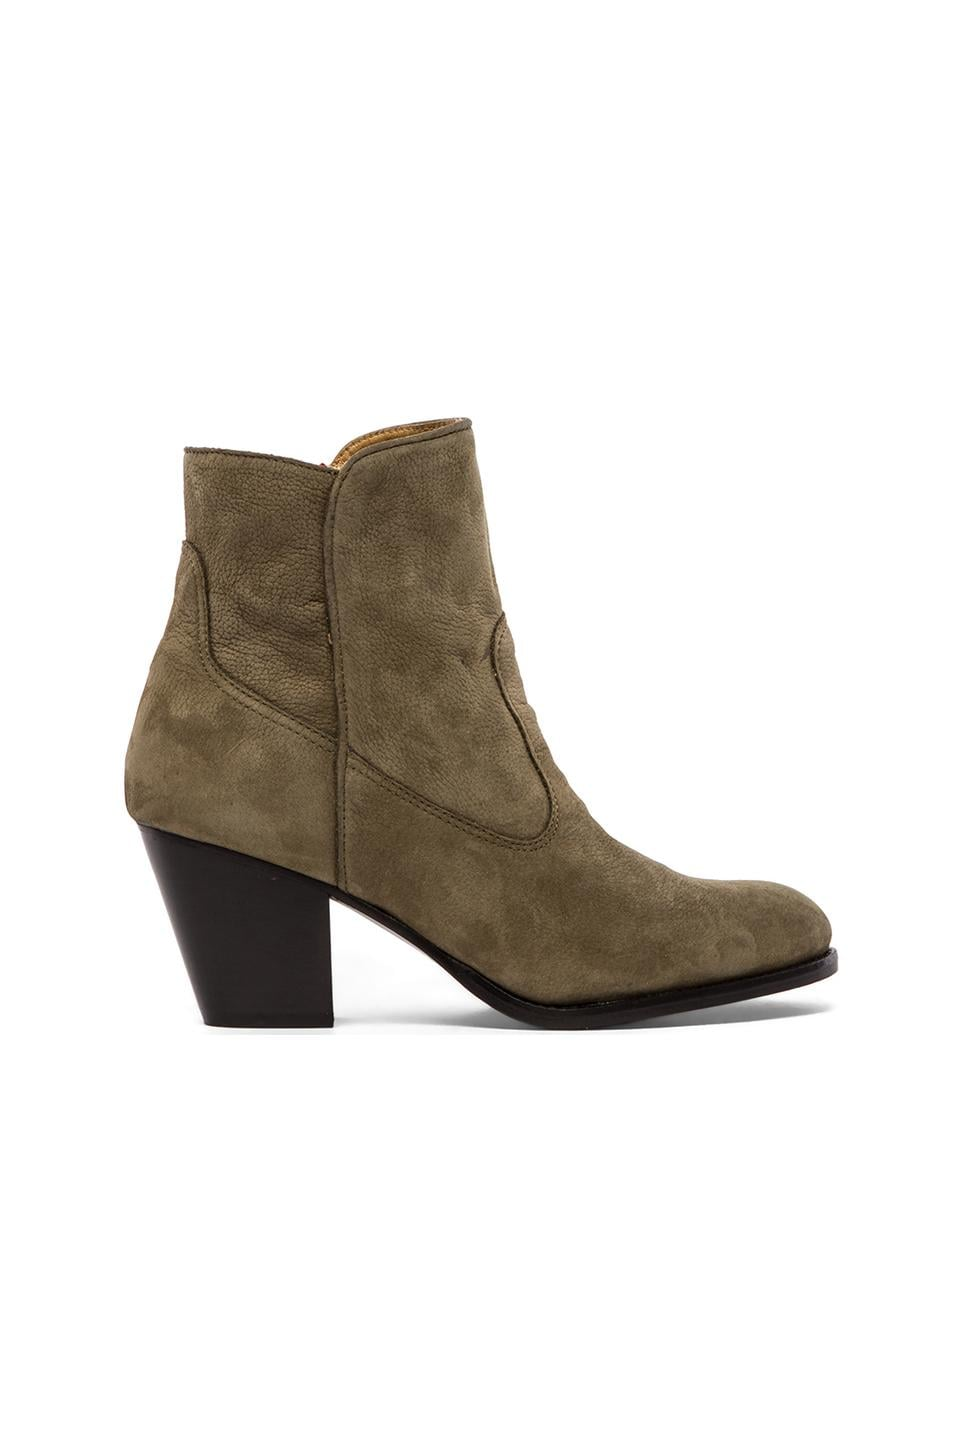 MODERN VICE COLLECTION Western Bing Bootie in Olive